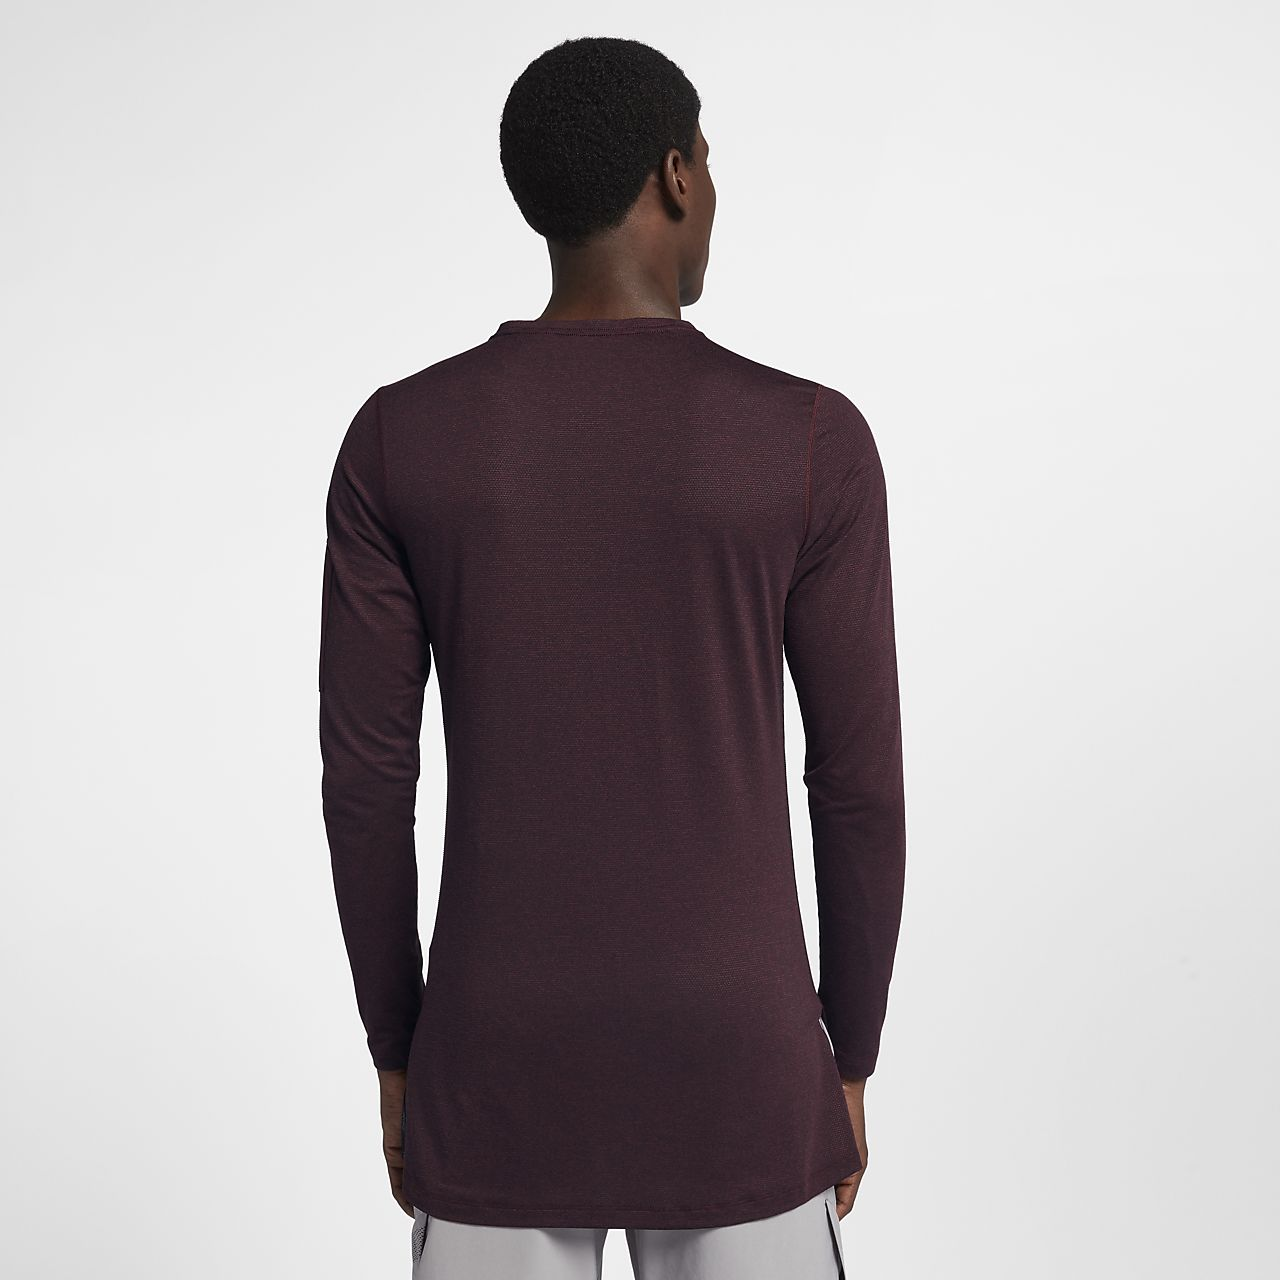 ... Nike Training Utility Men's Long Sleeve Top